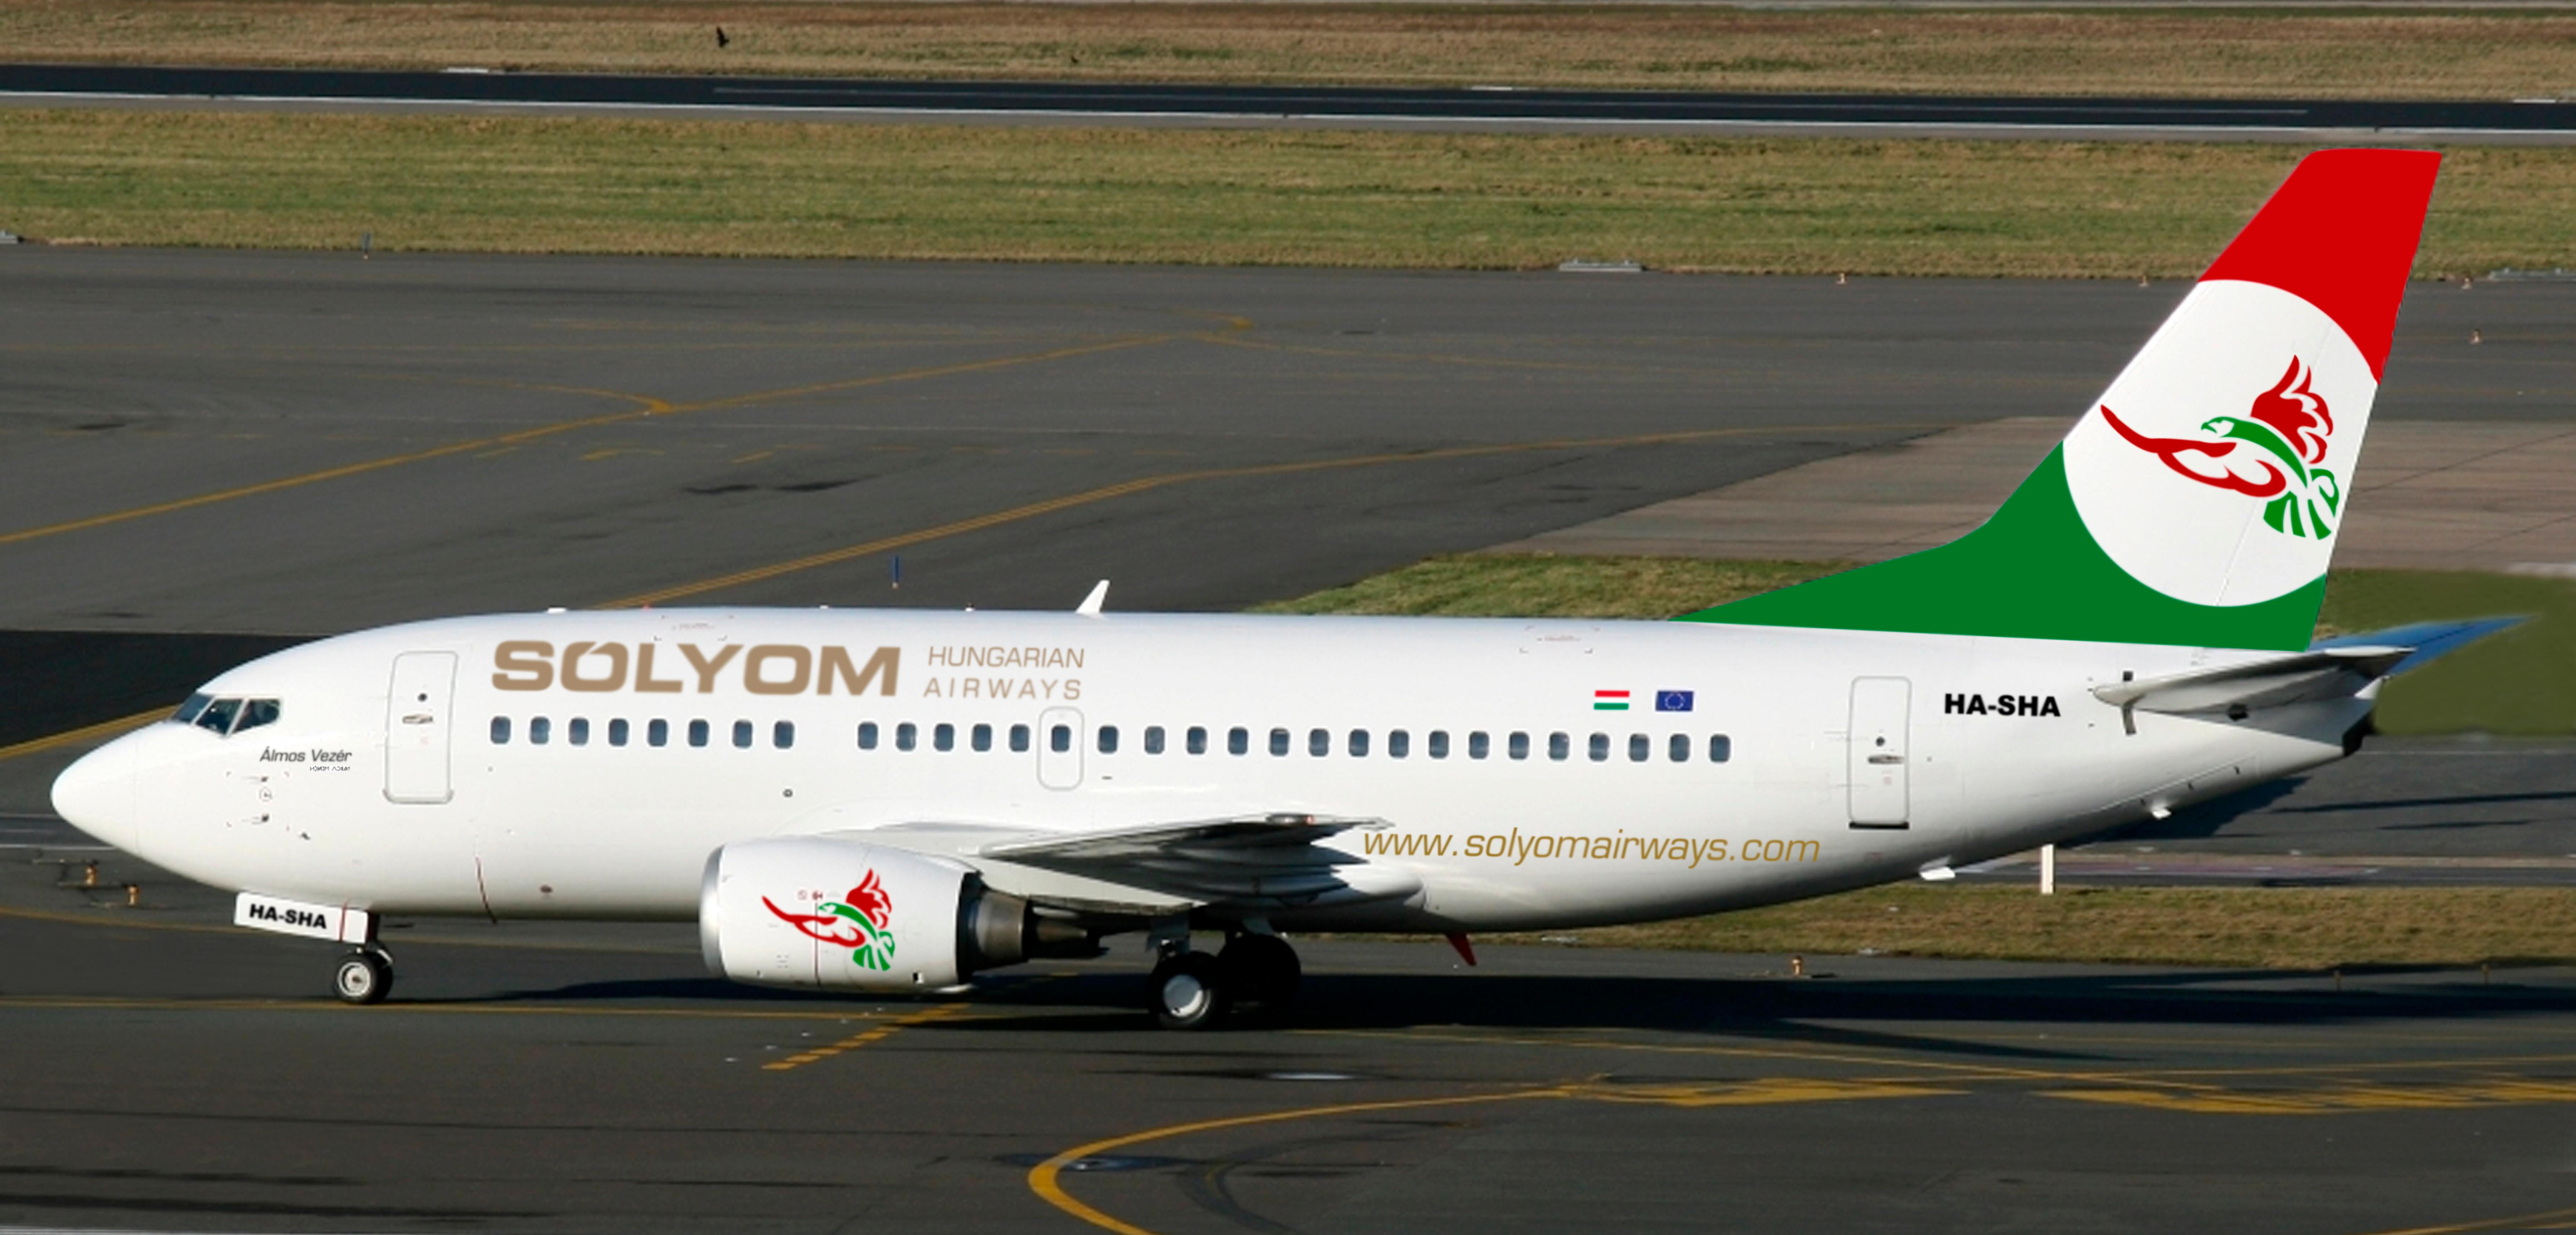 Sólyom's CEO Optimistic About Airline' Prospects – An Interview